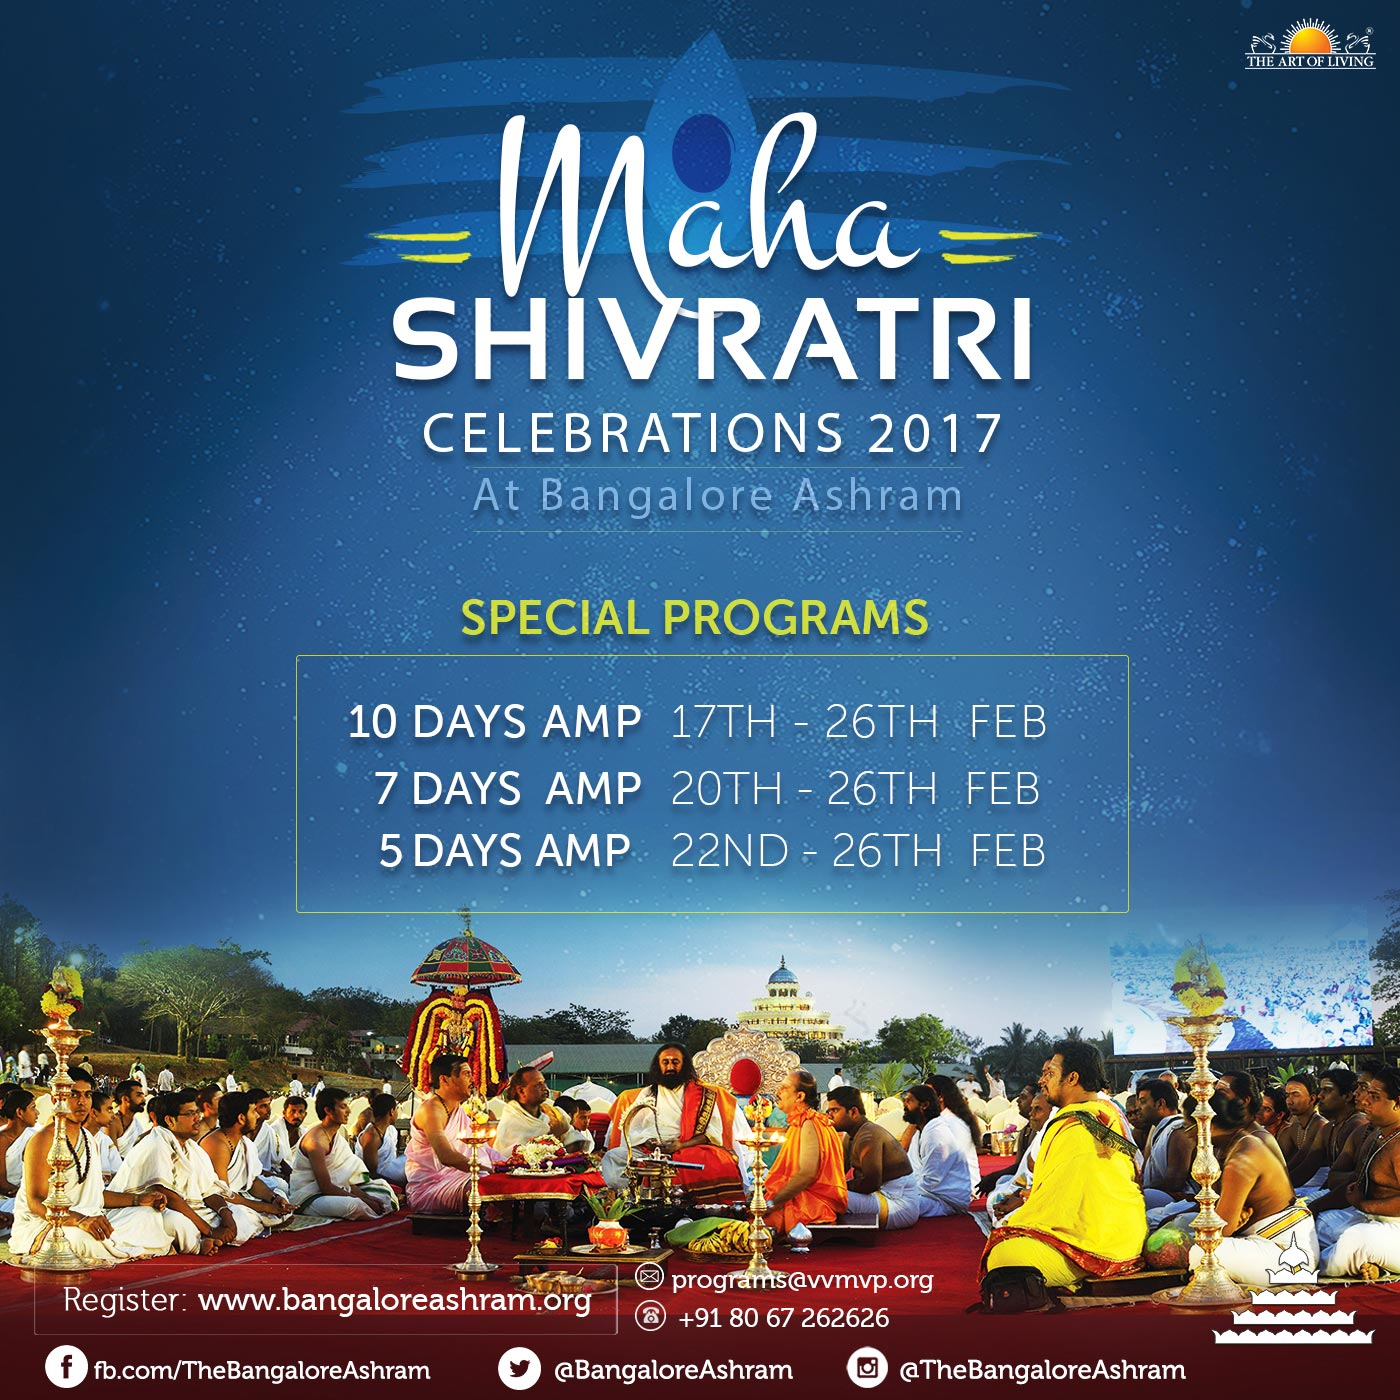 Maha Shivratri Celebrations 2017